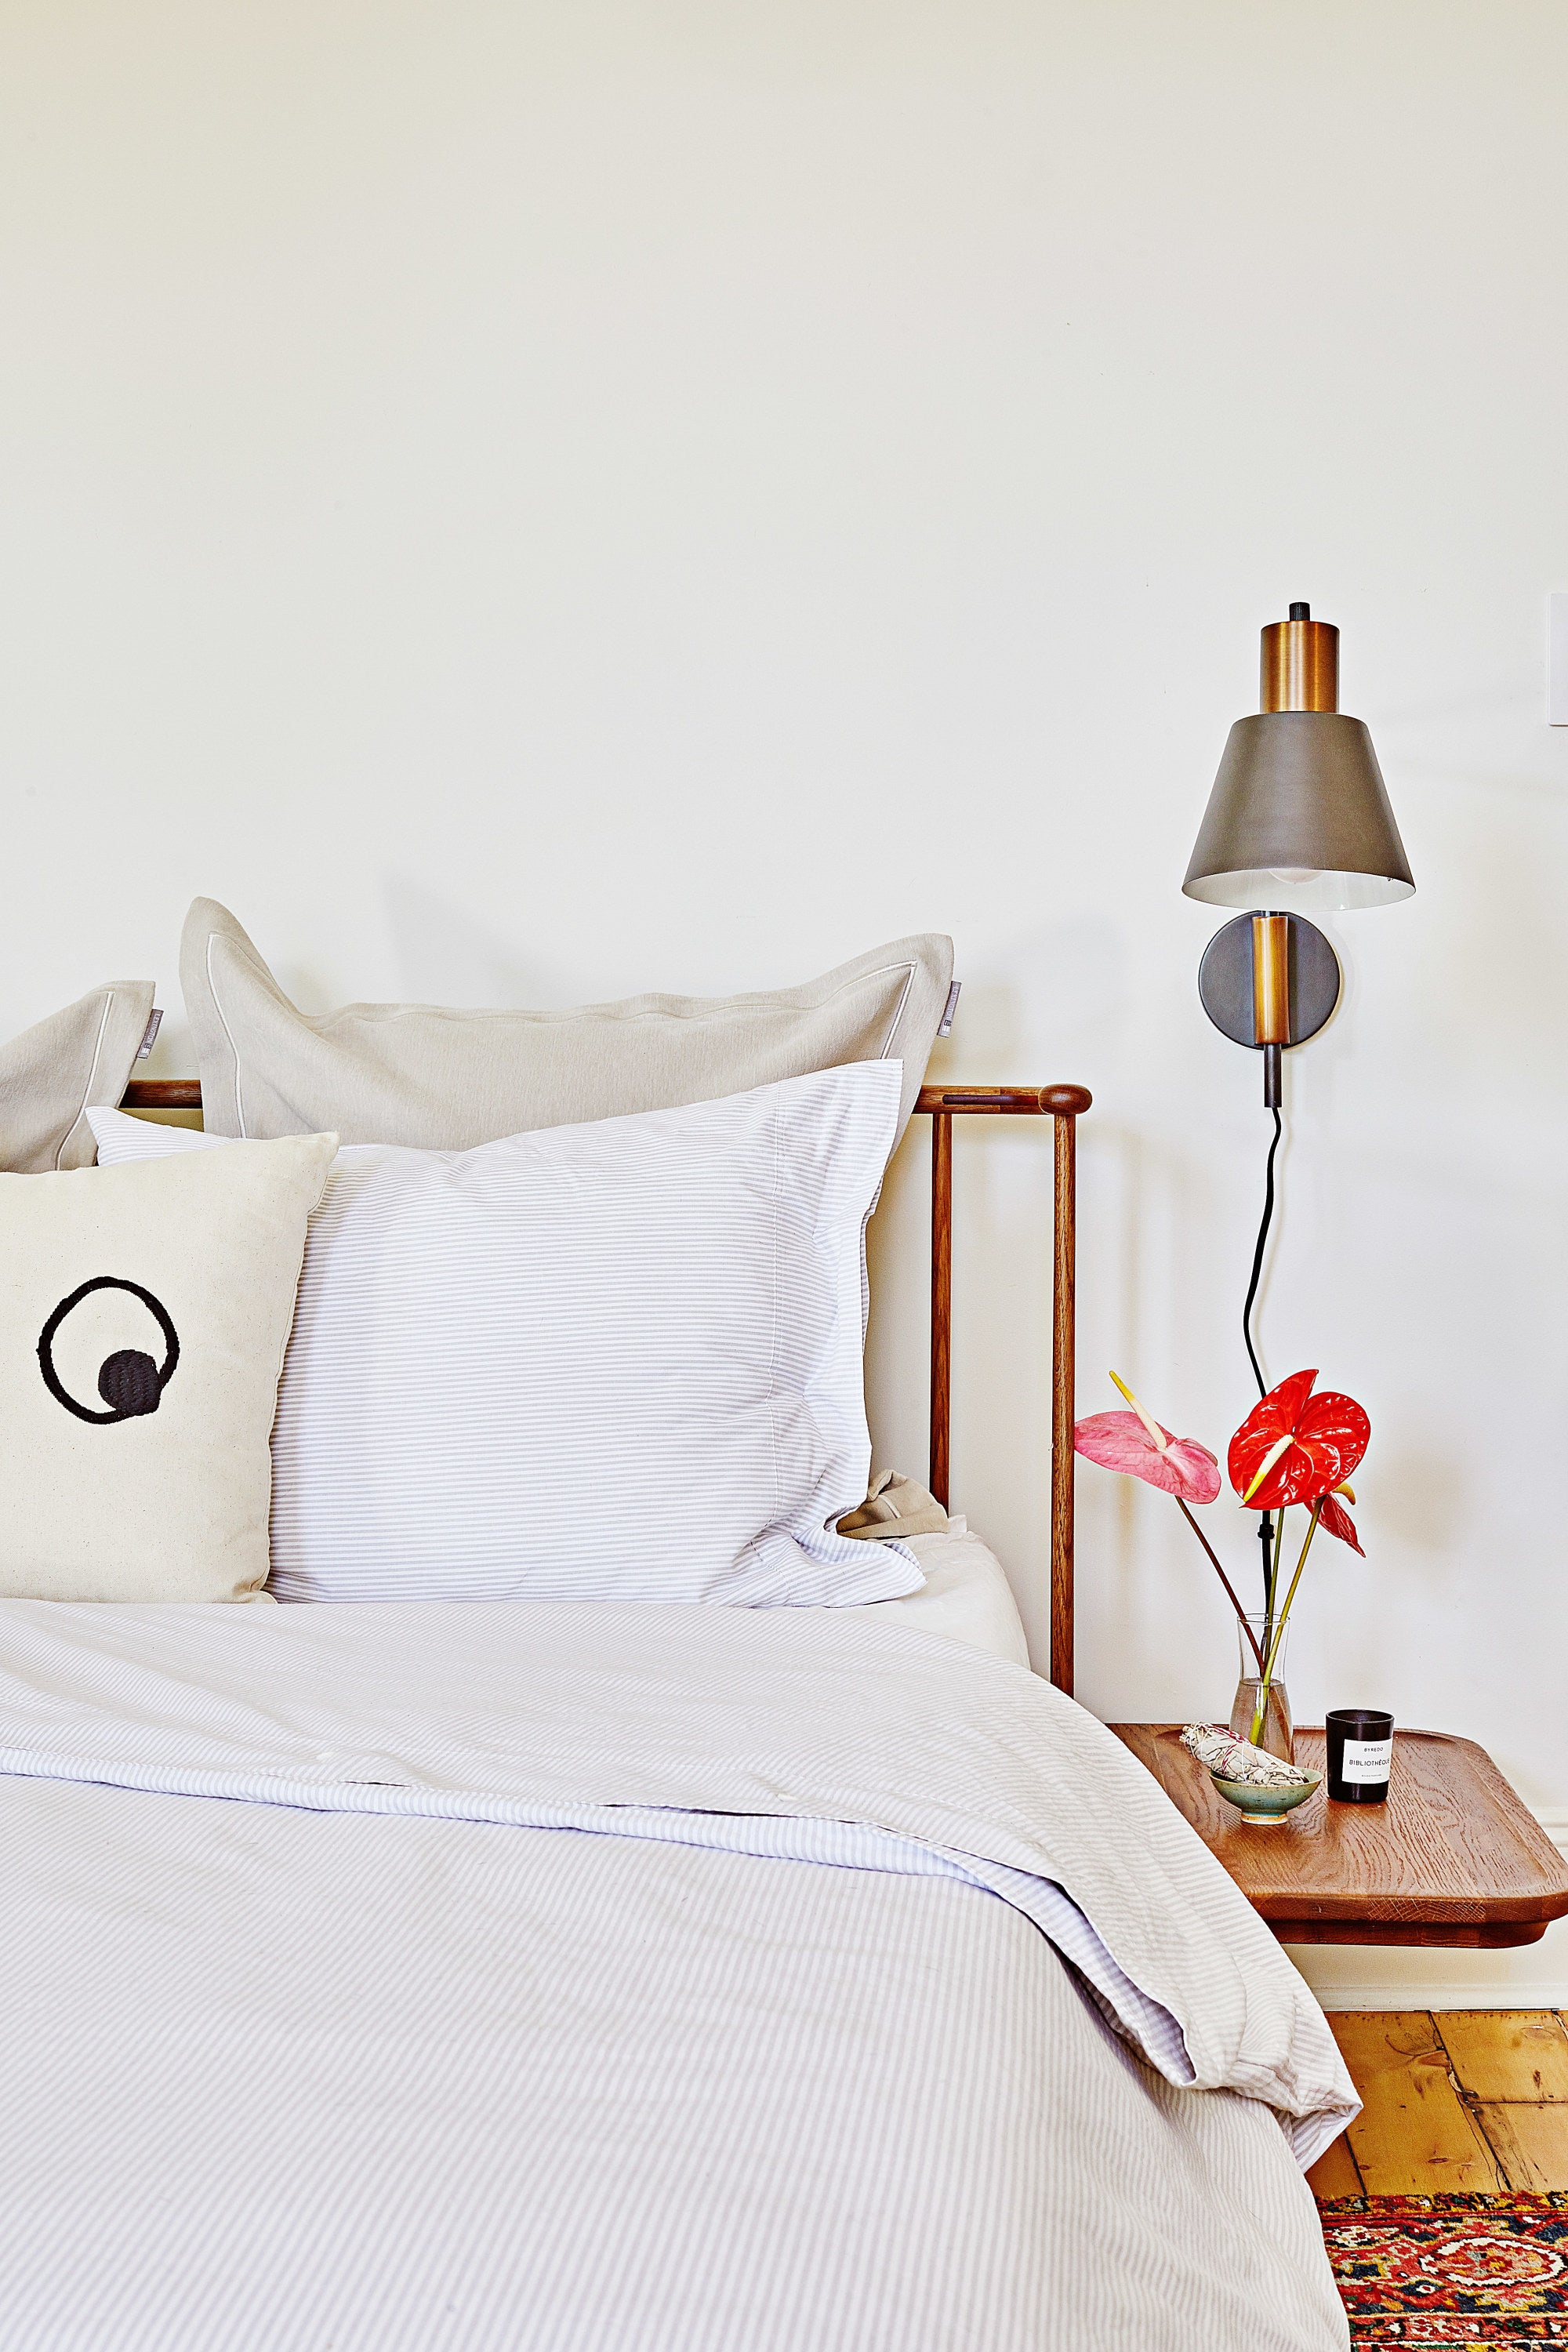 12 Big Ideas to Help Make the Most of a Tiny Studio Bedroom